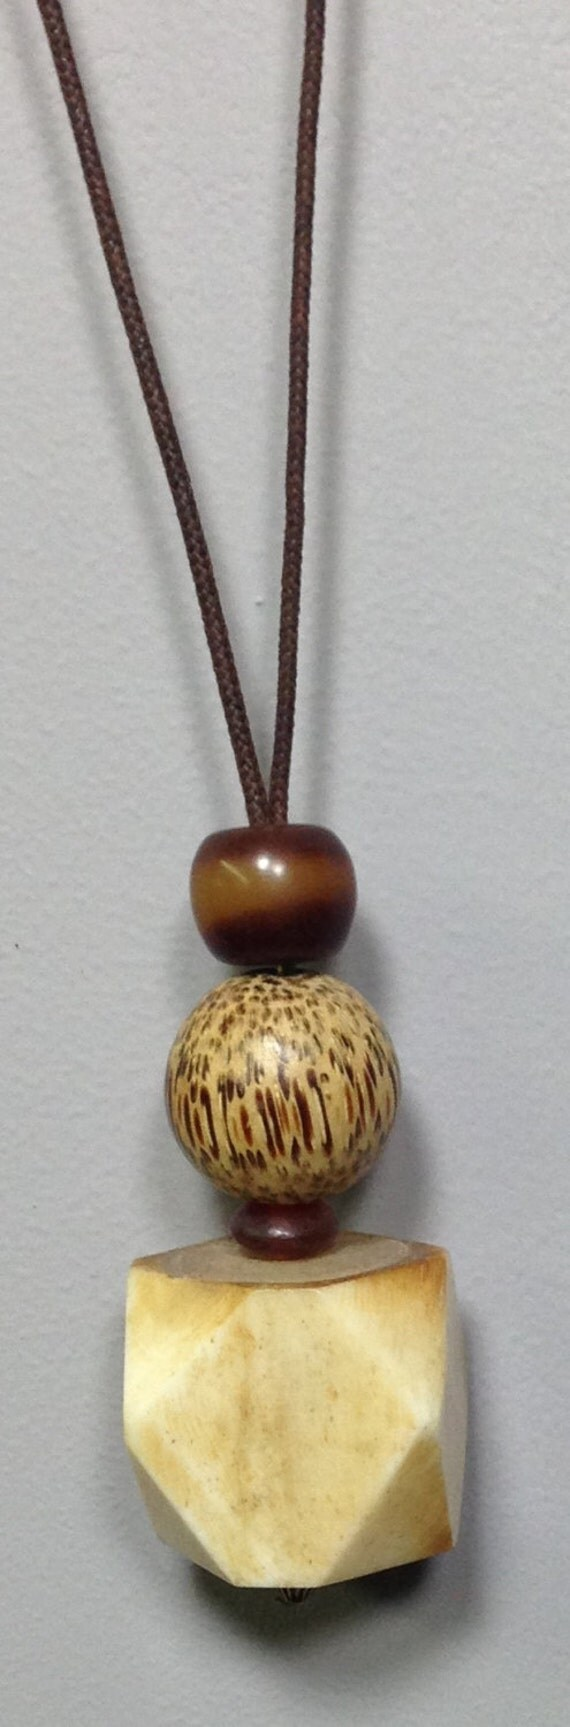 Cord Necklace Indonesian Bone Horn Philippine Wood Handmade Handcrafted Unique Statement Jewelry Fun